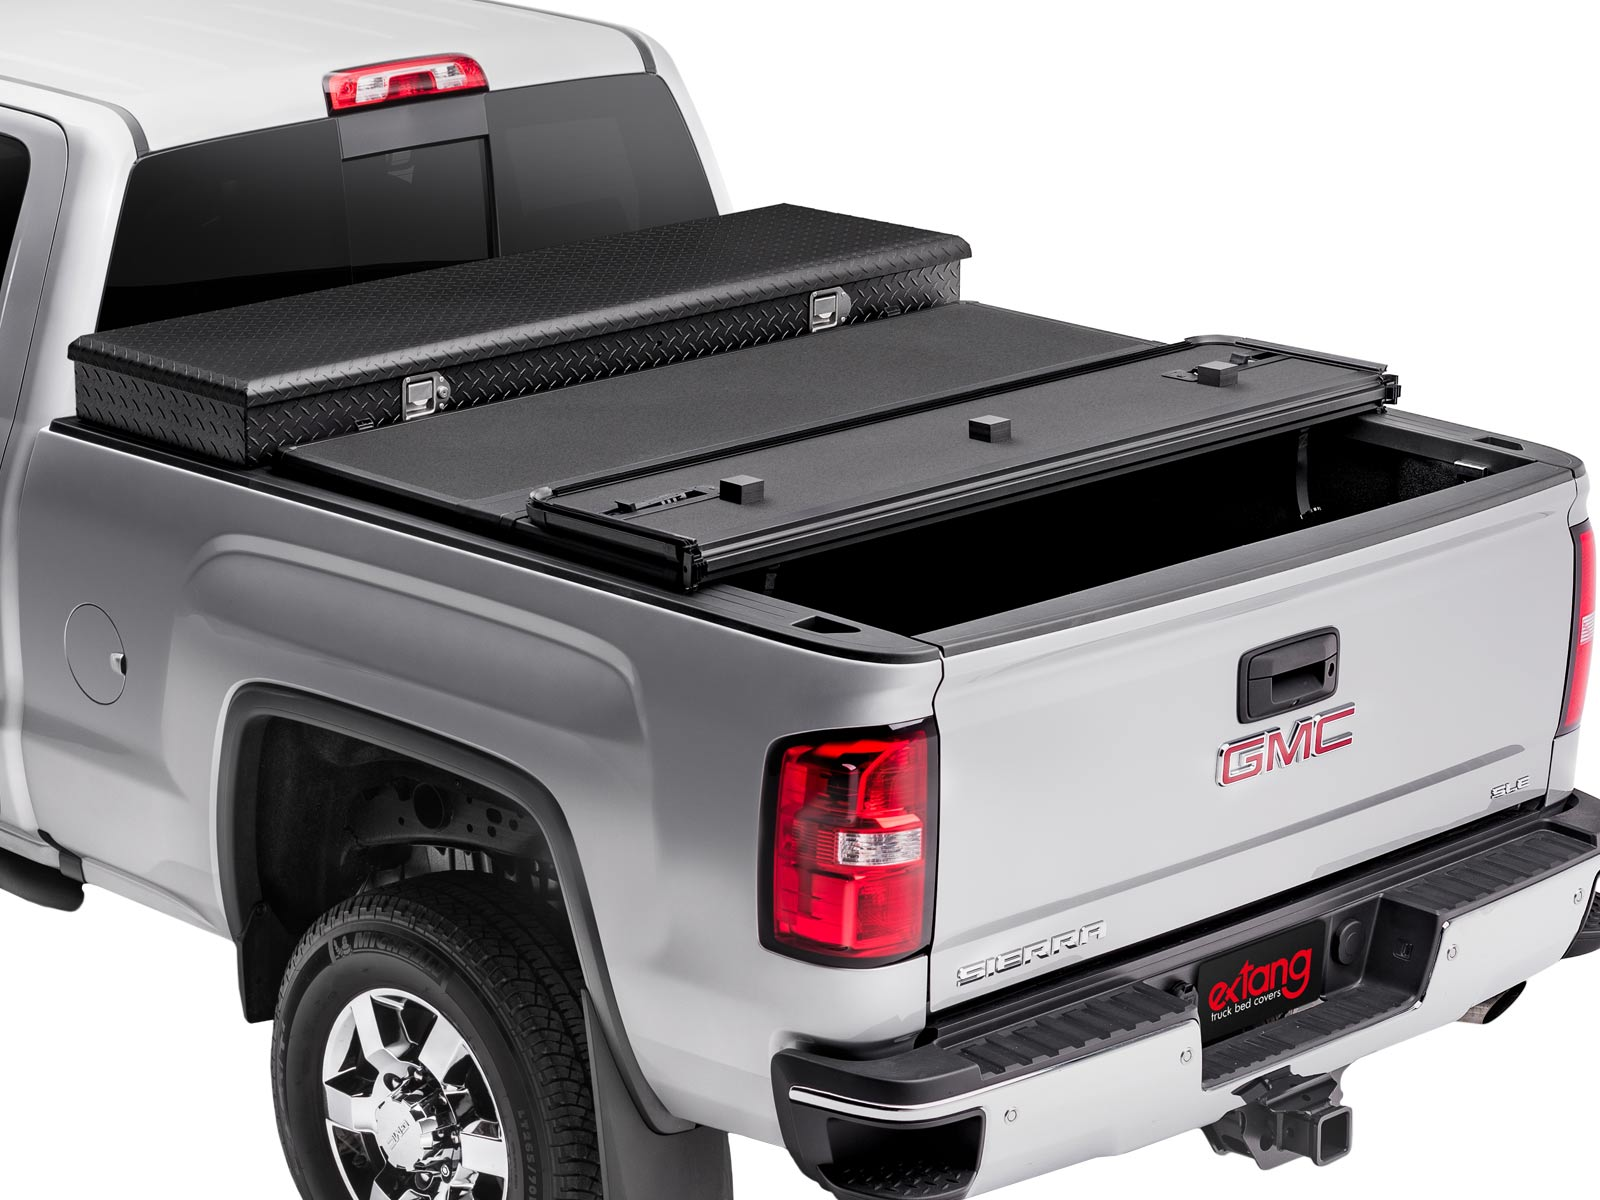 2018 Ford F150 Toolbox Tonneaus Tonneau Covers World